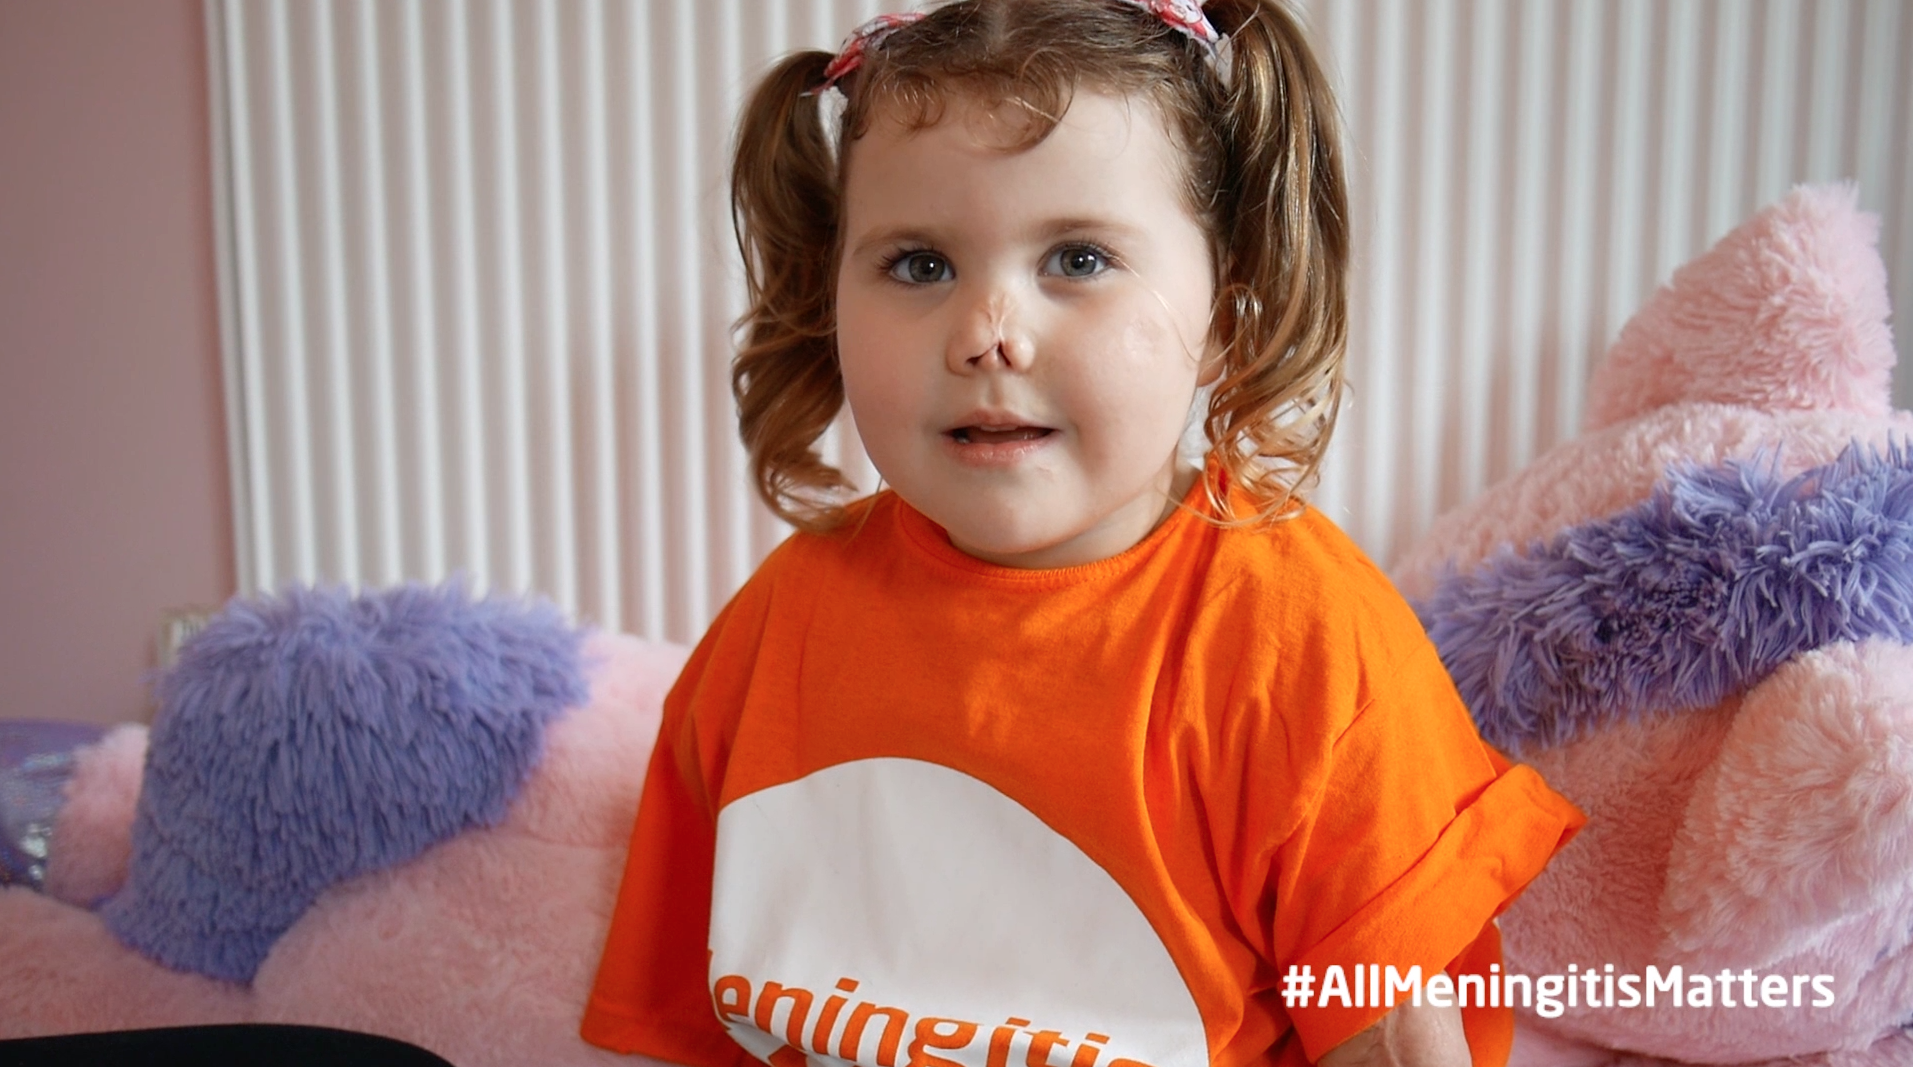 EXPLAINED: 4-year-old helps spread awareness of meningitis symptoms